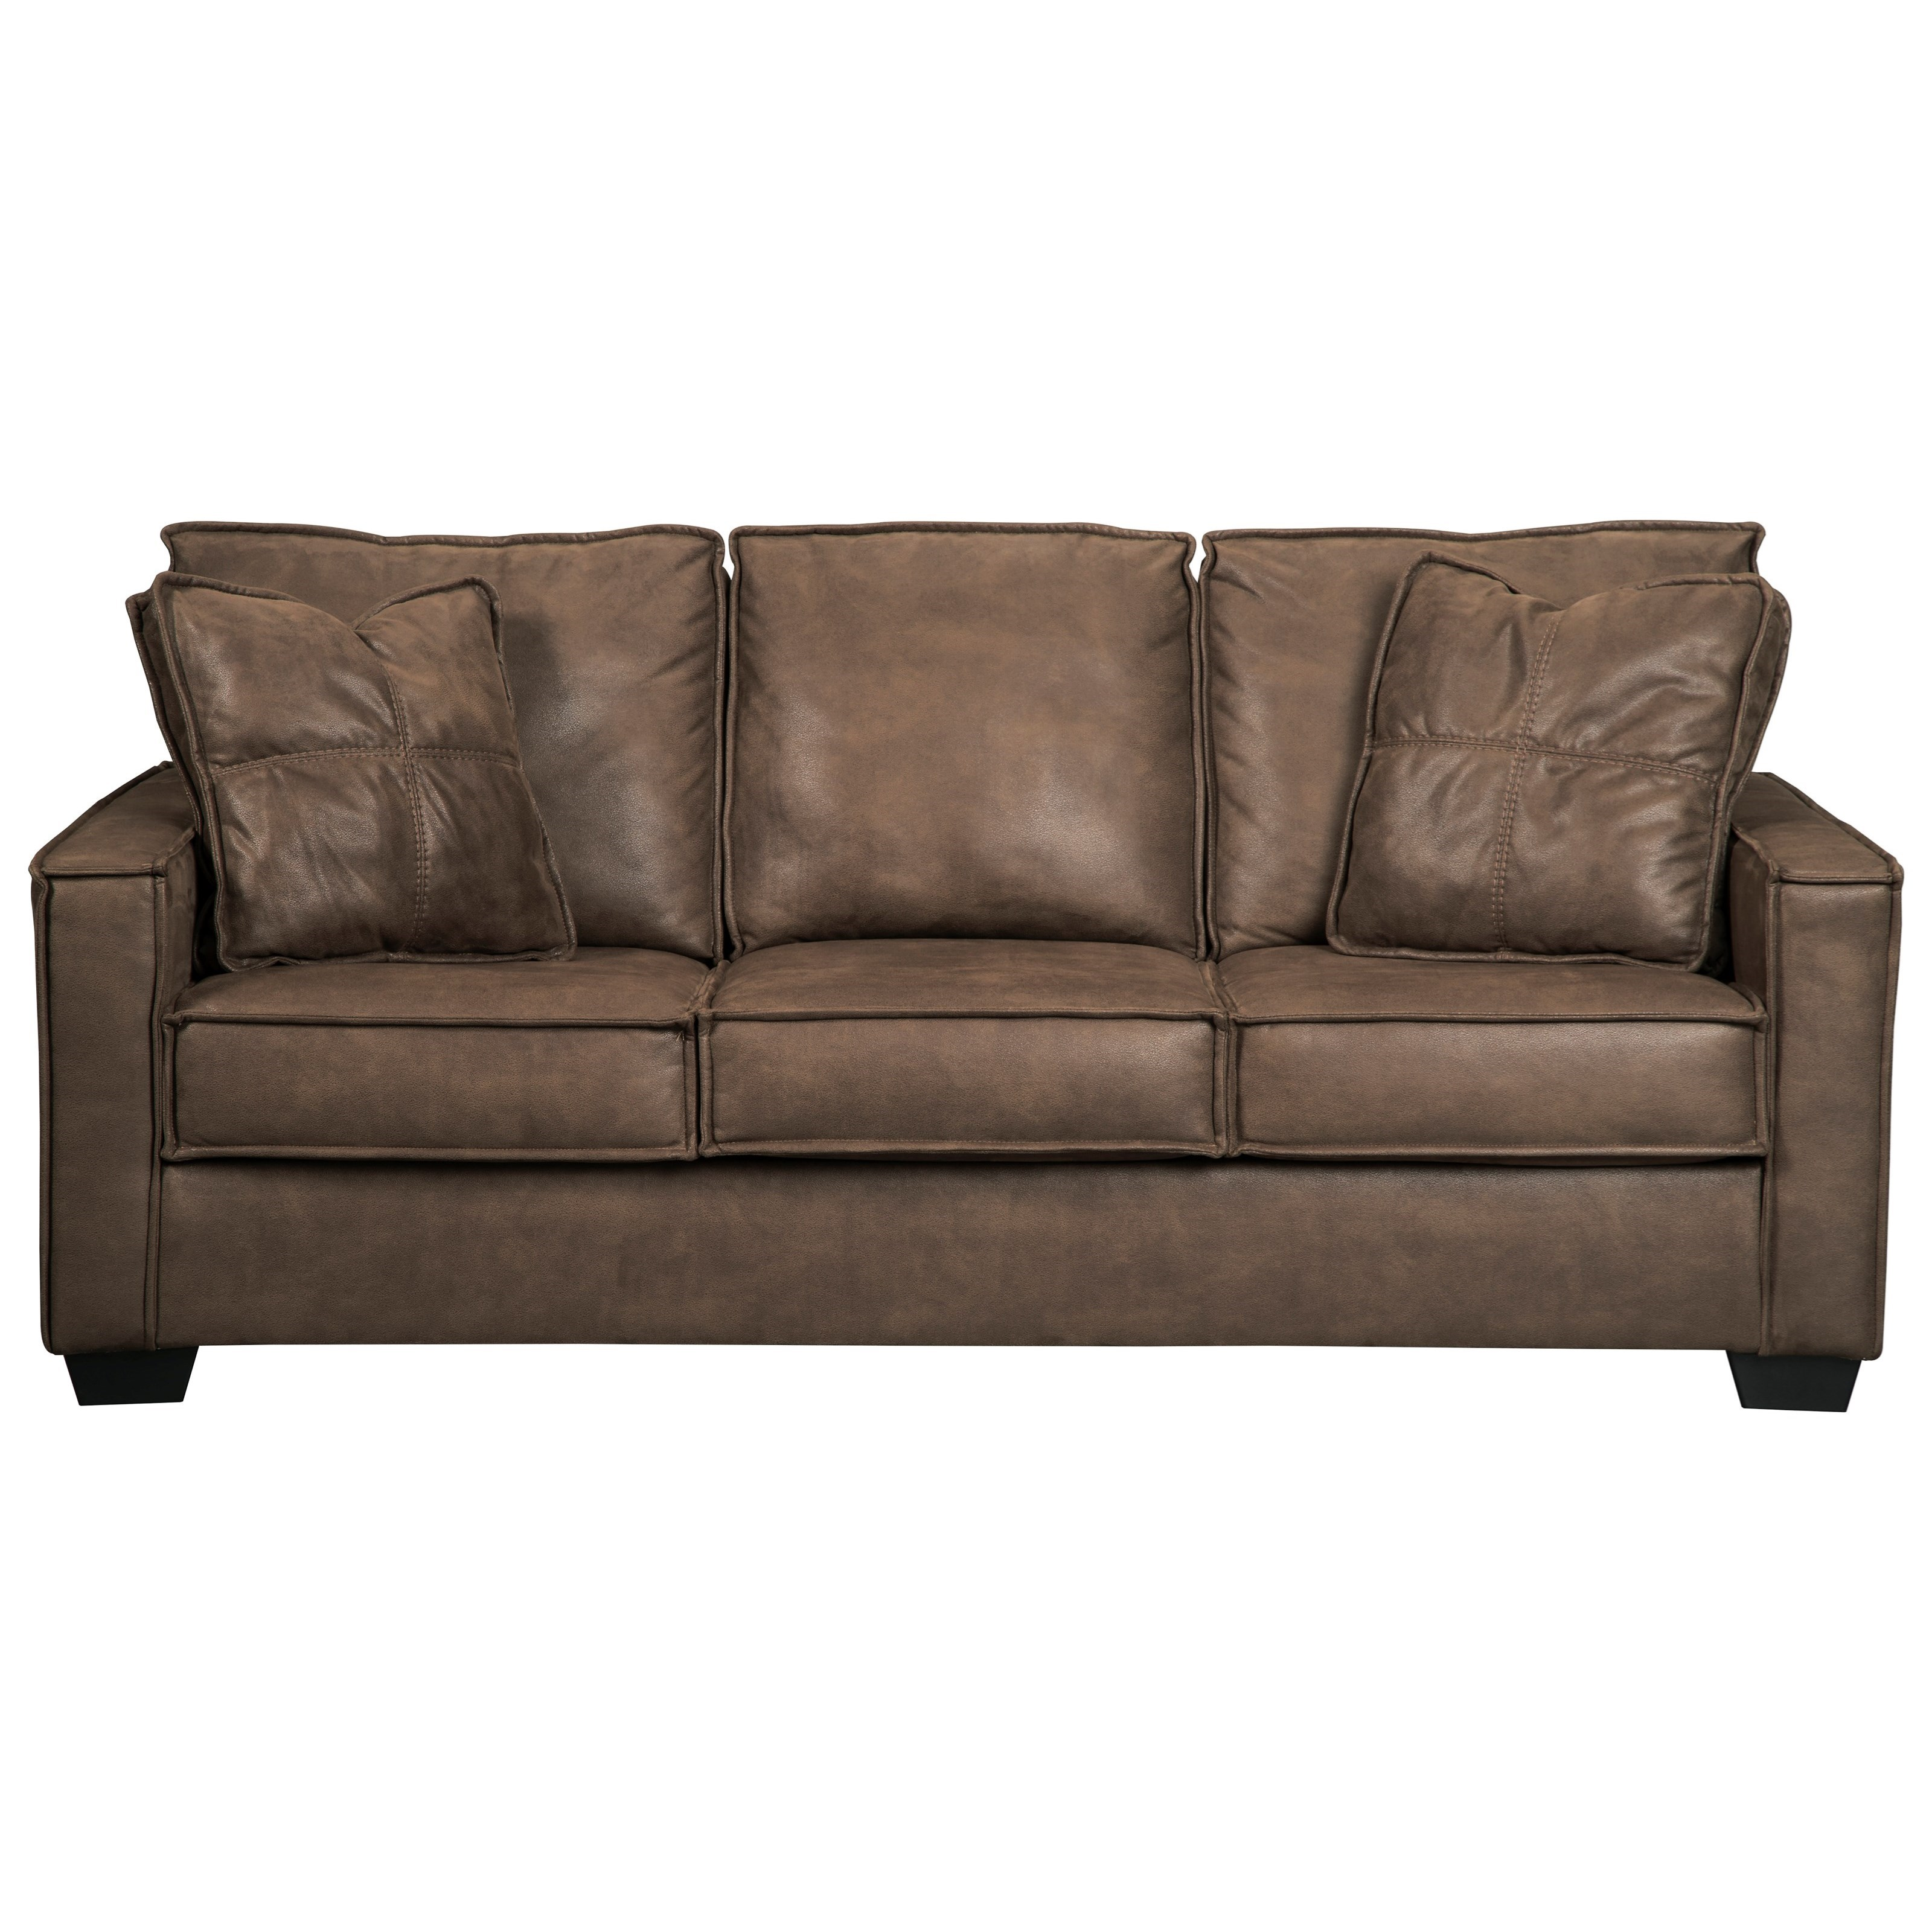 Signature design by ashley terrington faux leather sofa for Ashley leather sofa